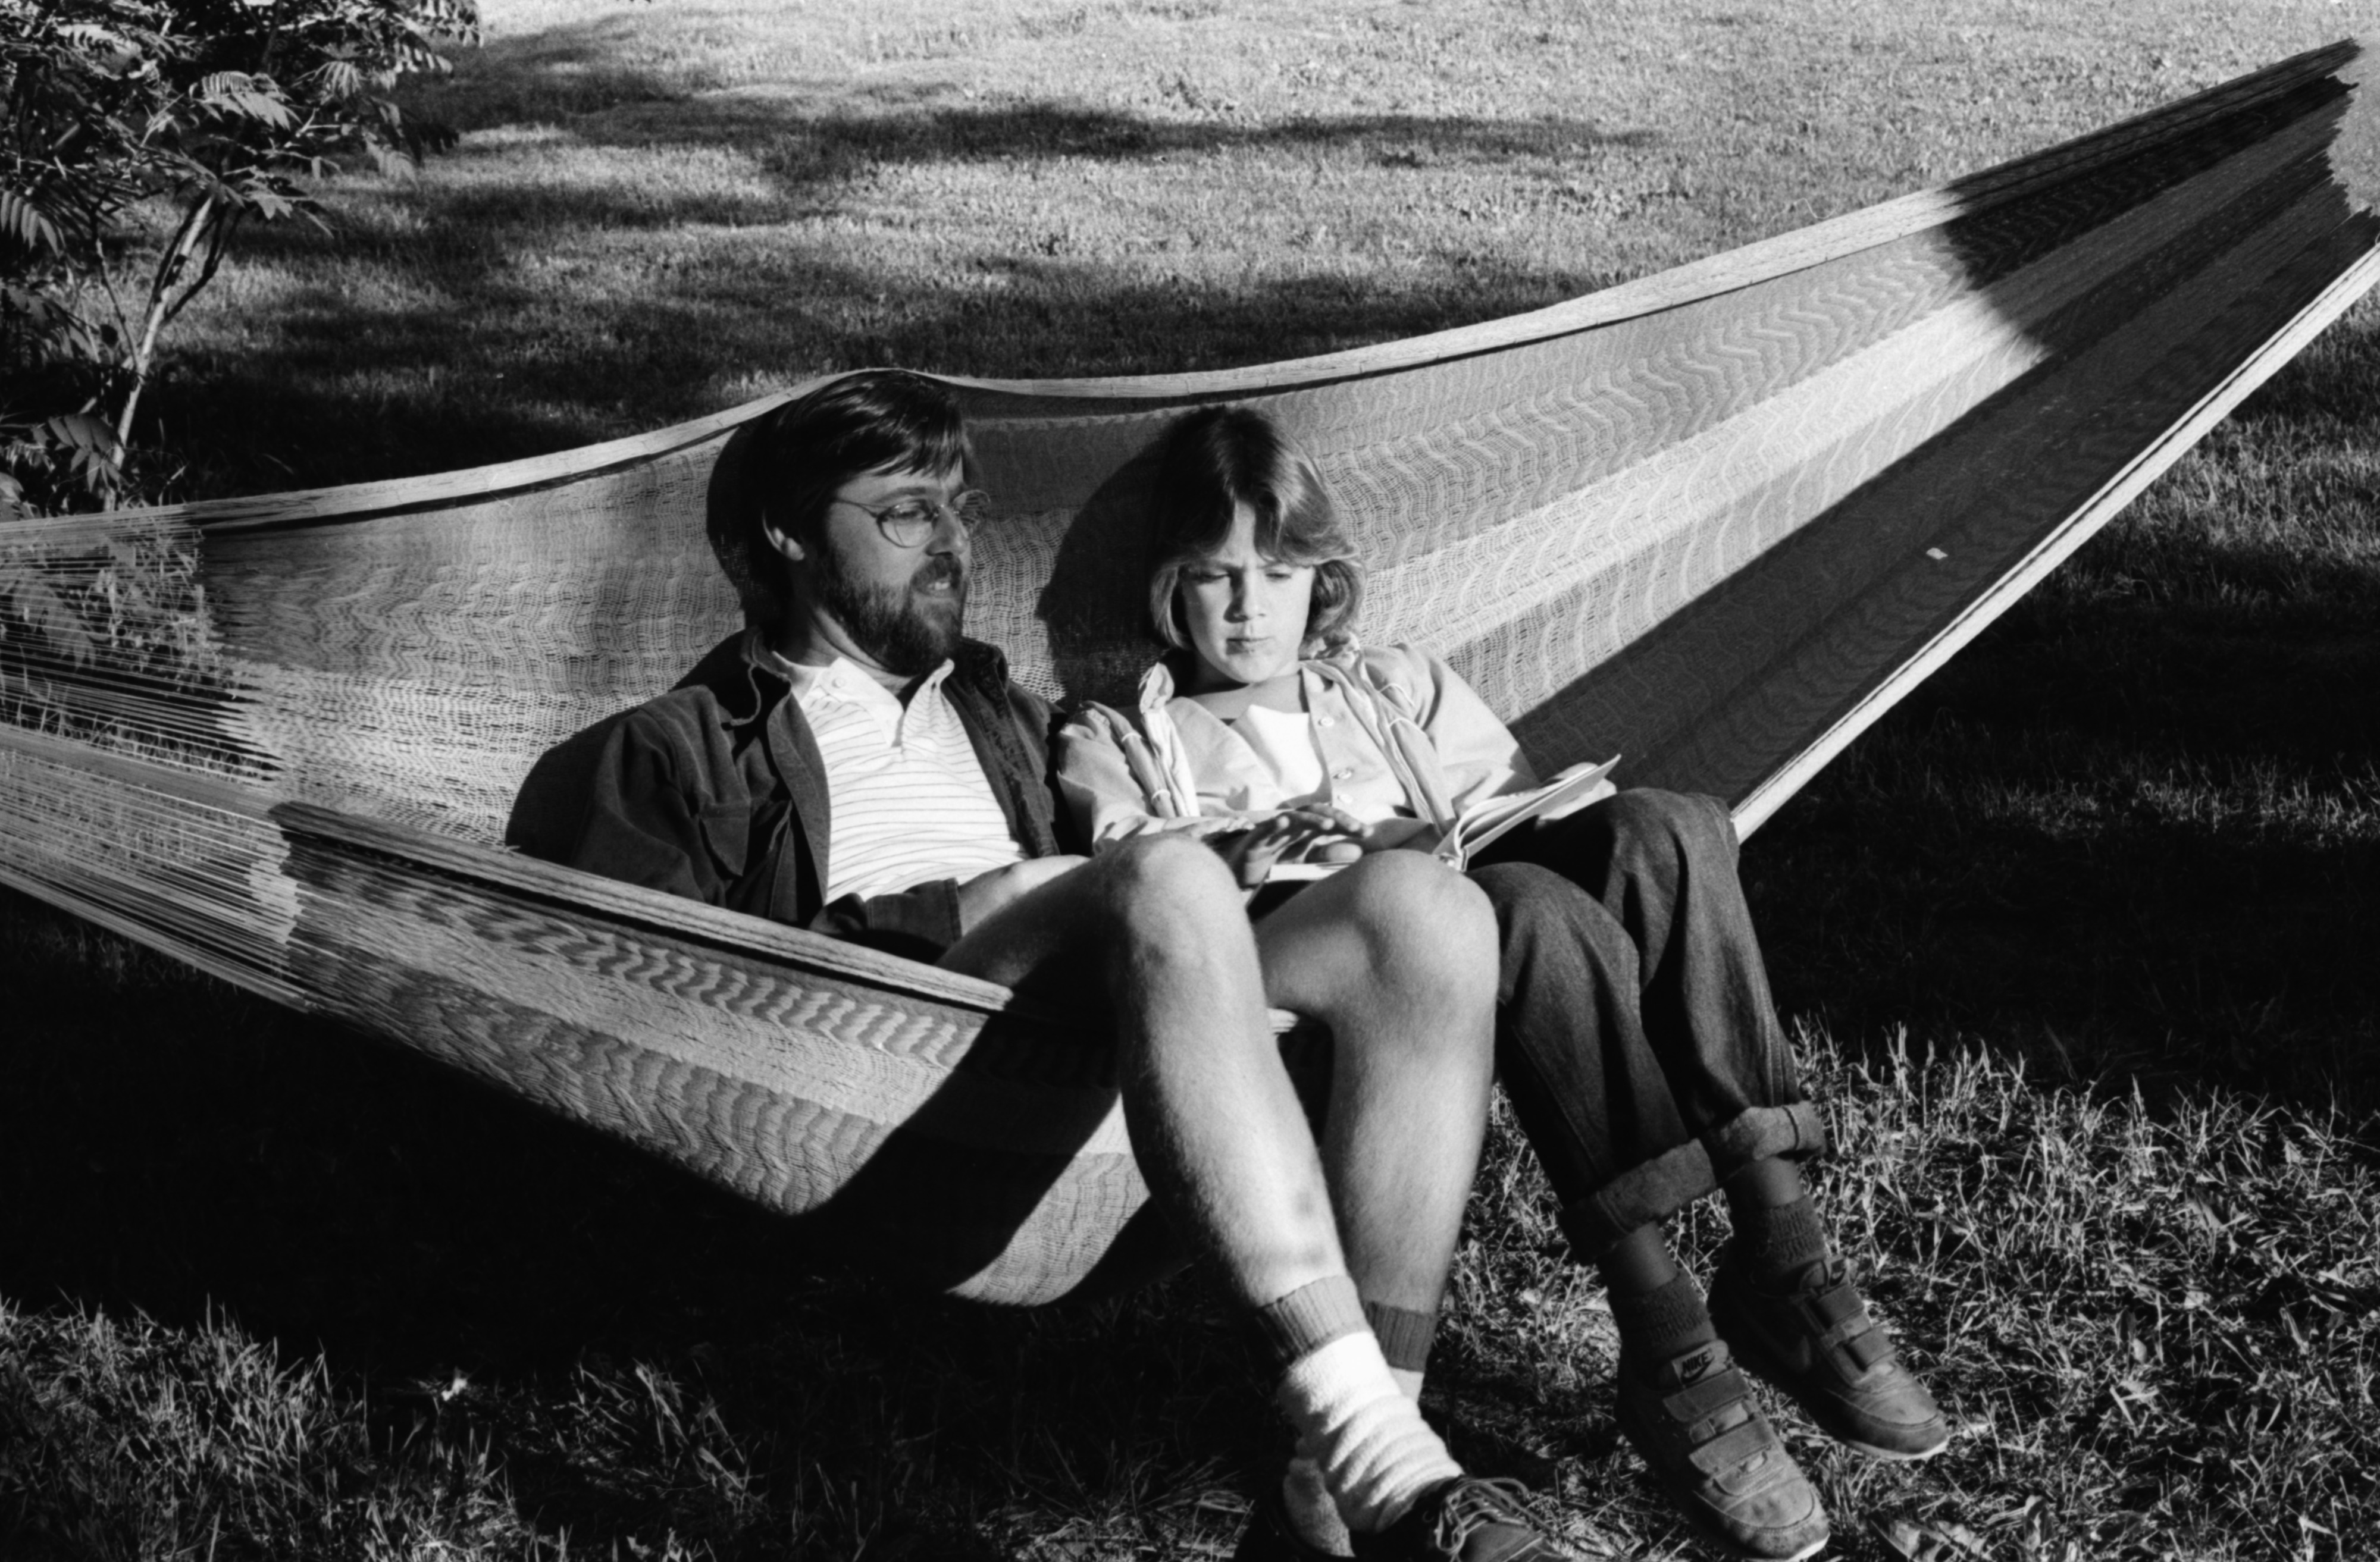 Chris Lane with daughter Robin, June 1984 image